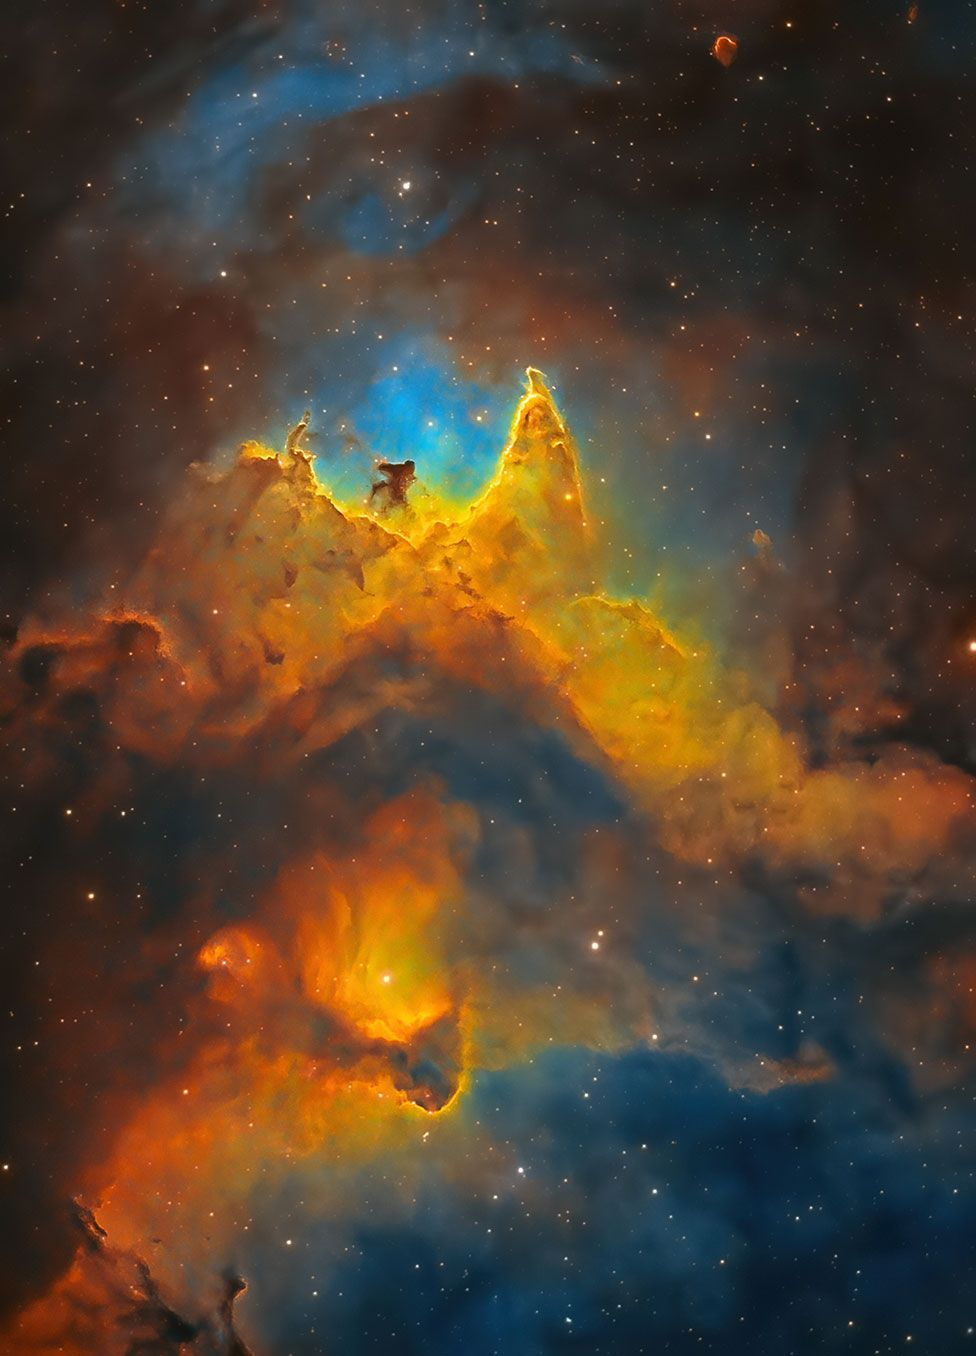 An astronomy image of the Soul Nebula